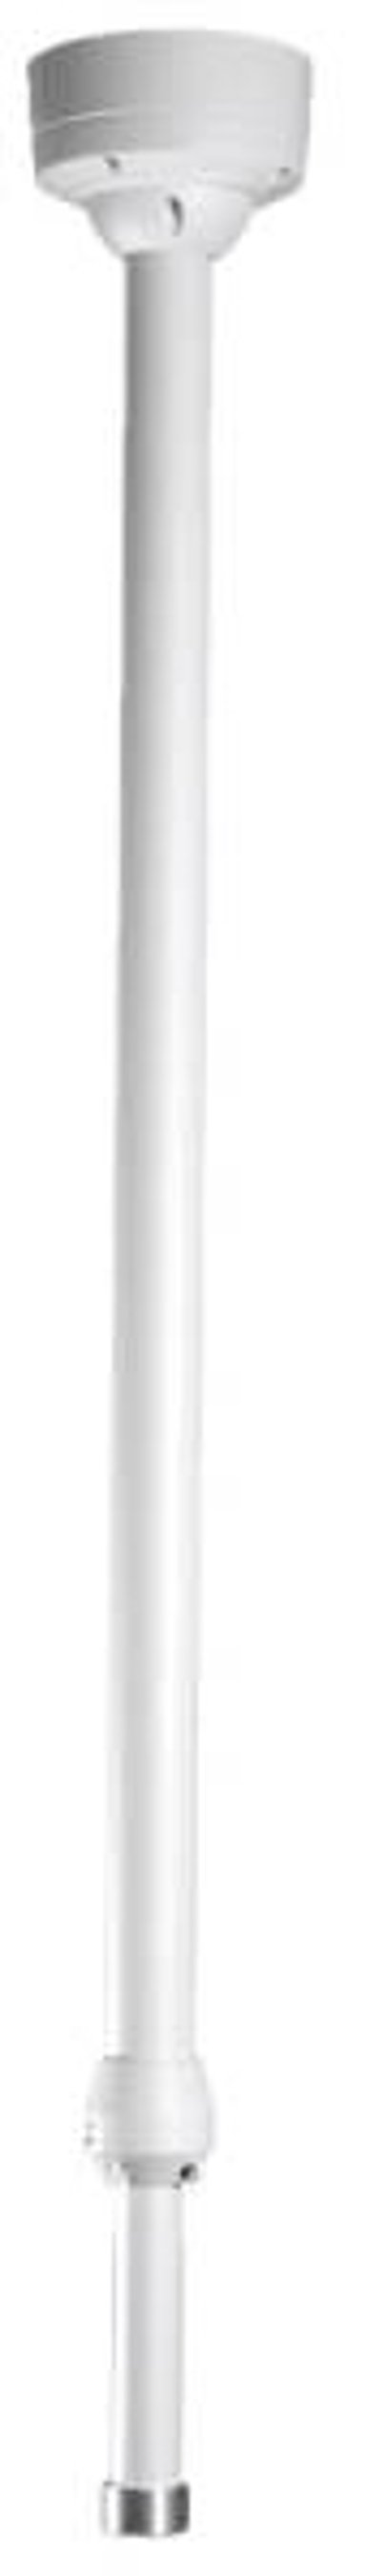 Axis T91B53 Telescopic Ceiling Mount